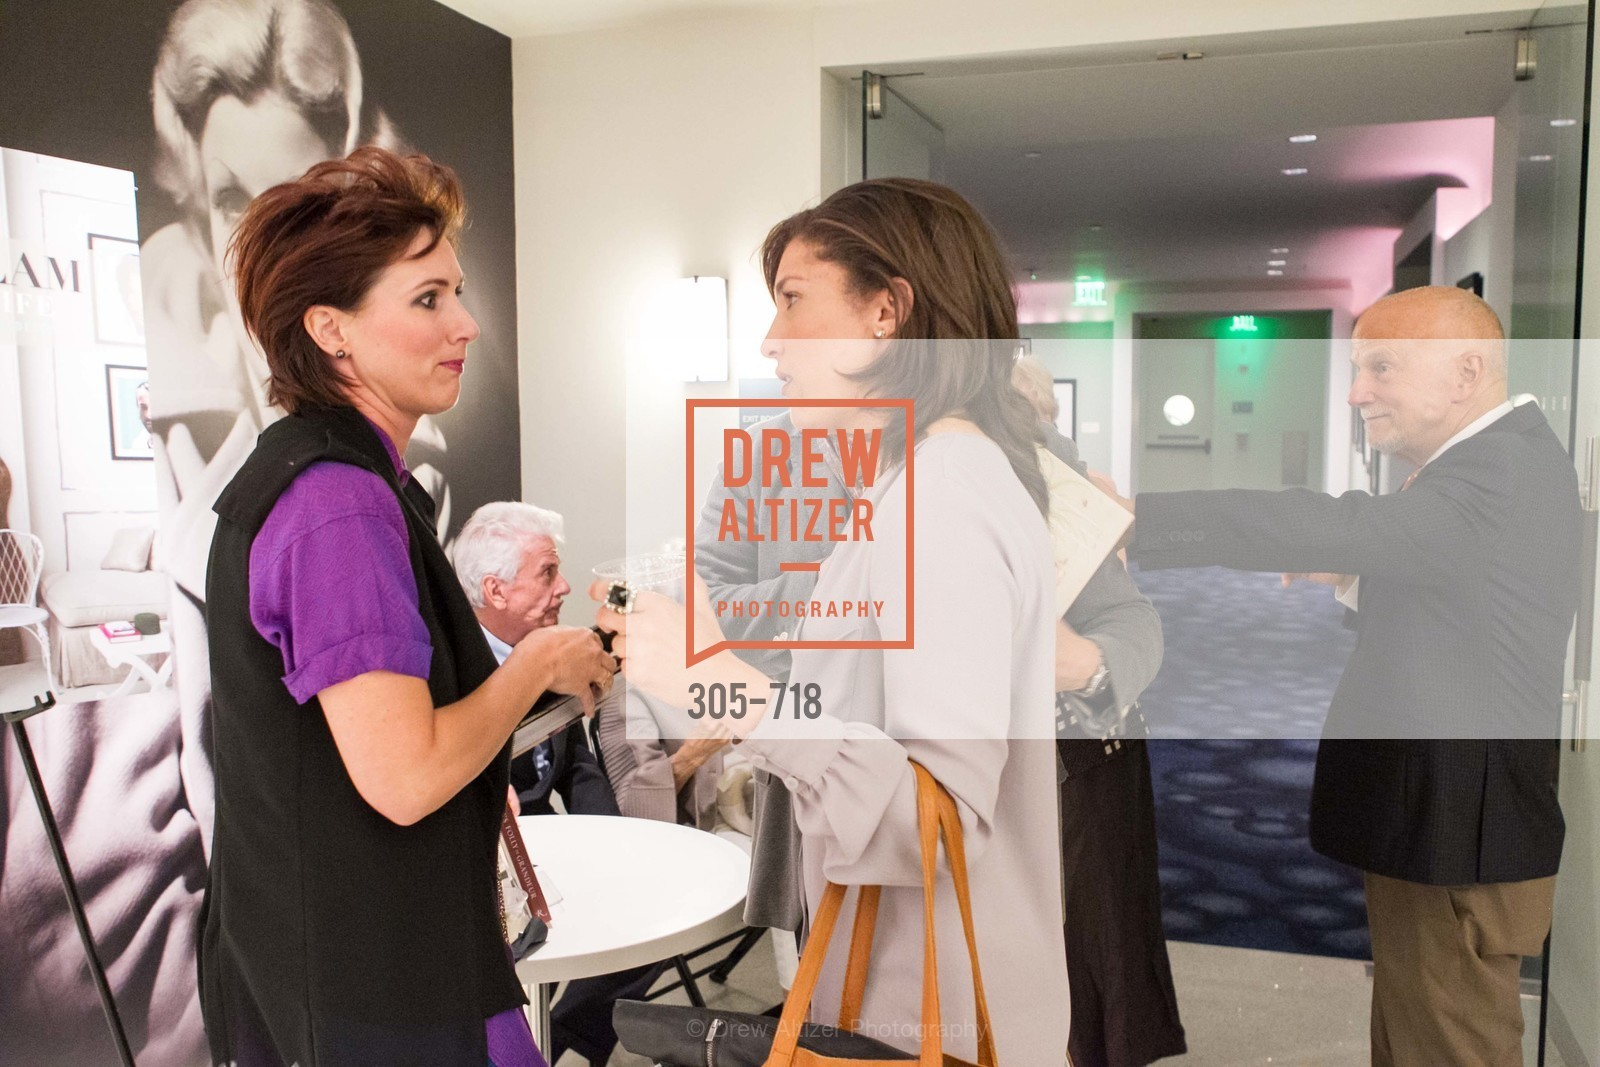 Extras, ICAA Hosts NICKY HASLAM'S Lecture and Book Signing, May 11th, 2015, Photo,Drew Altizer, Drew Altizer Photography, full-service agency, private events, San Francisco photographer, photographer california